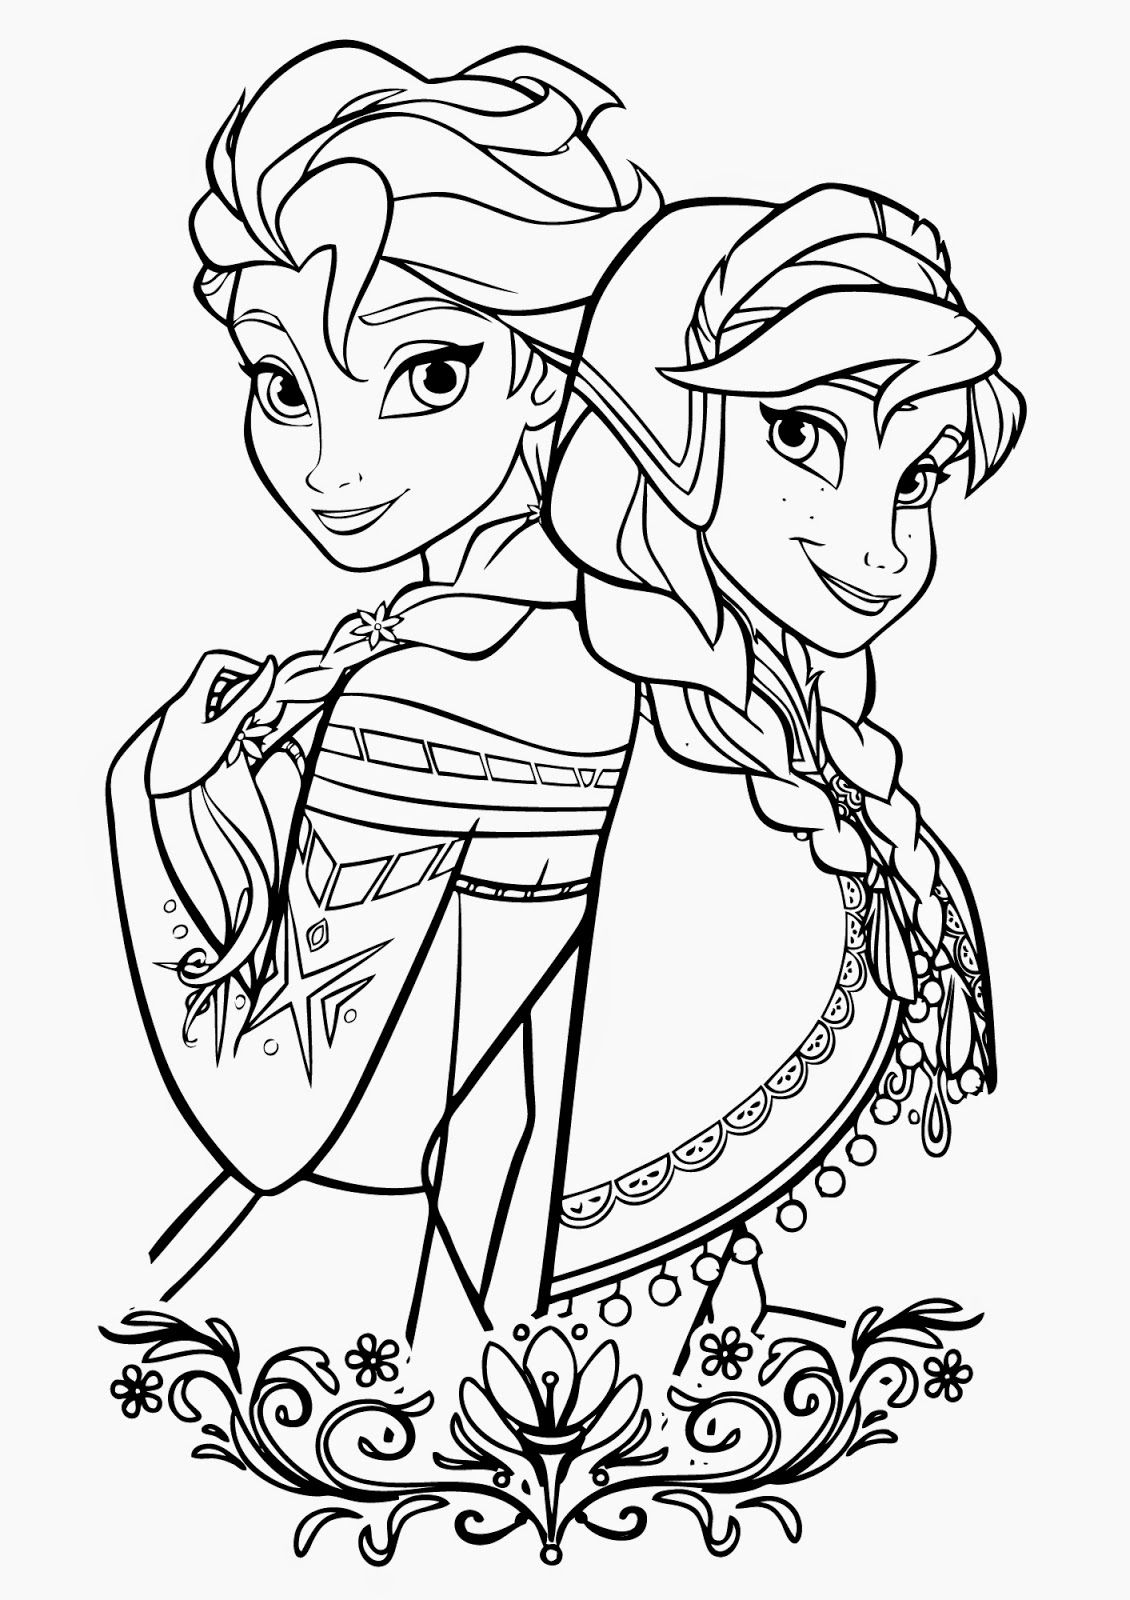 Coloring book printable frozen - Elsa Freeze Coloring Page Printable Coloring Pages Sheets For Kids Get The Latest Free Elsa Freeze Coloring Page Images Favorite Coloring Pages To Print